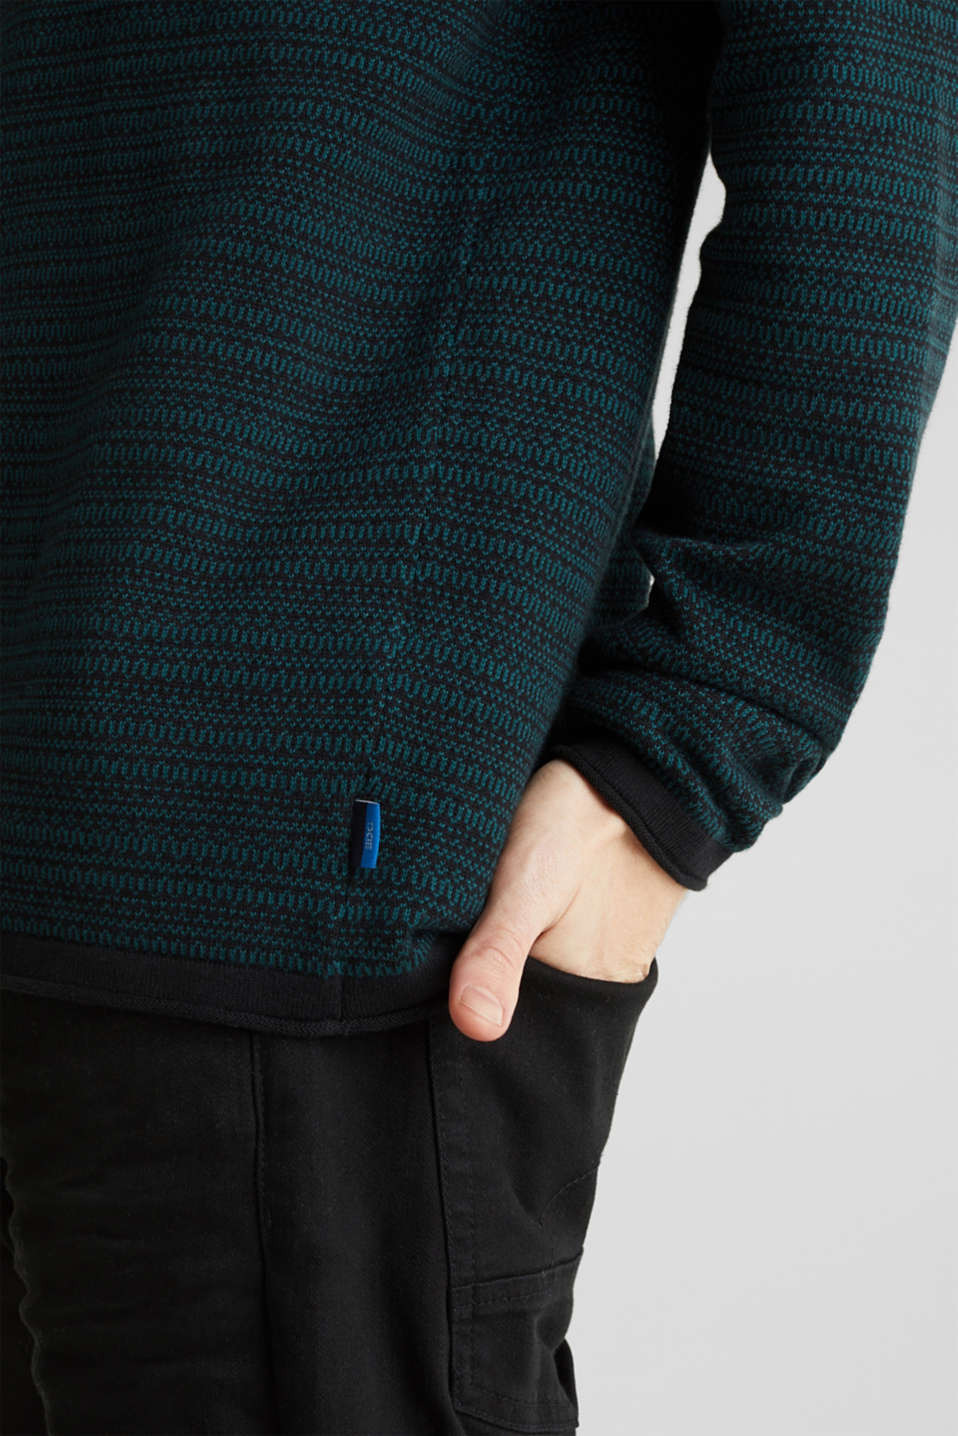 Jacquard jumper made of pure cotton, DARK TEAL GREEN, detail image number 2